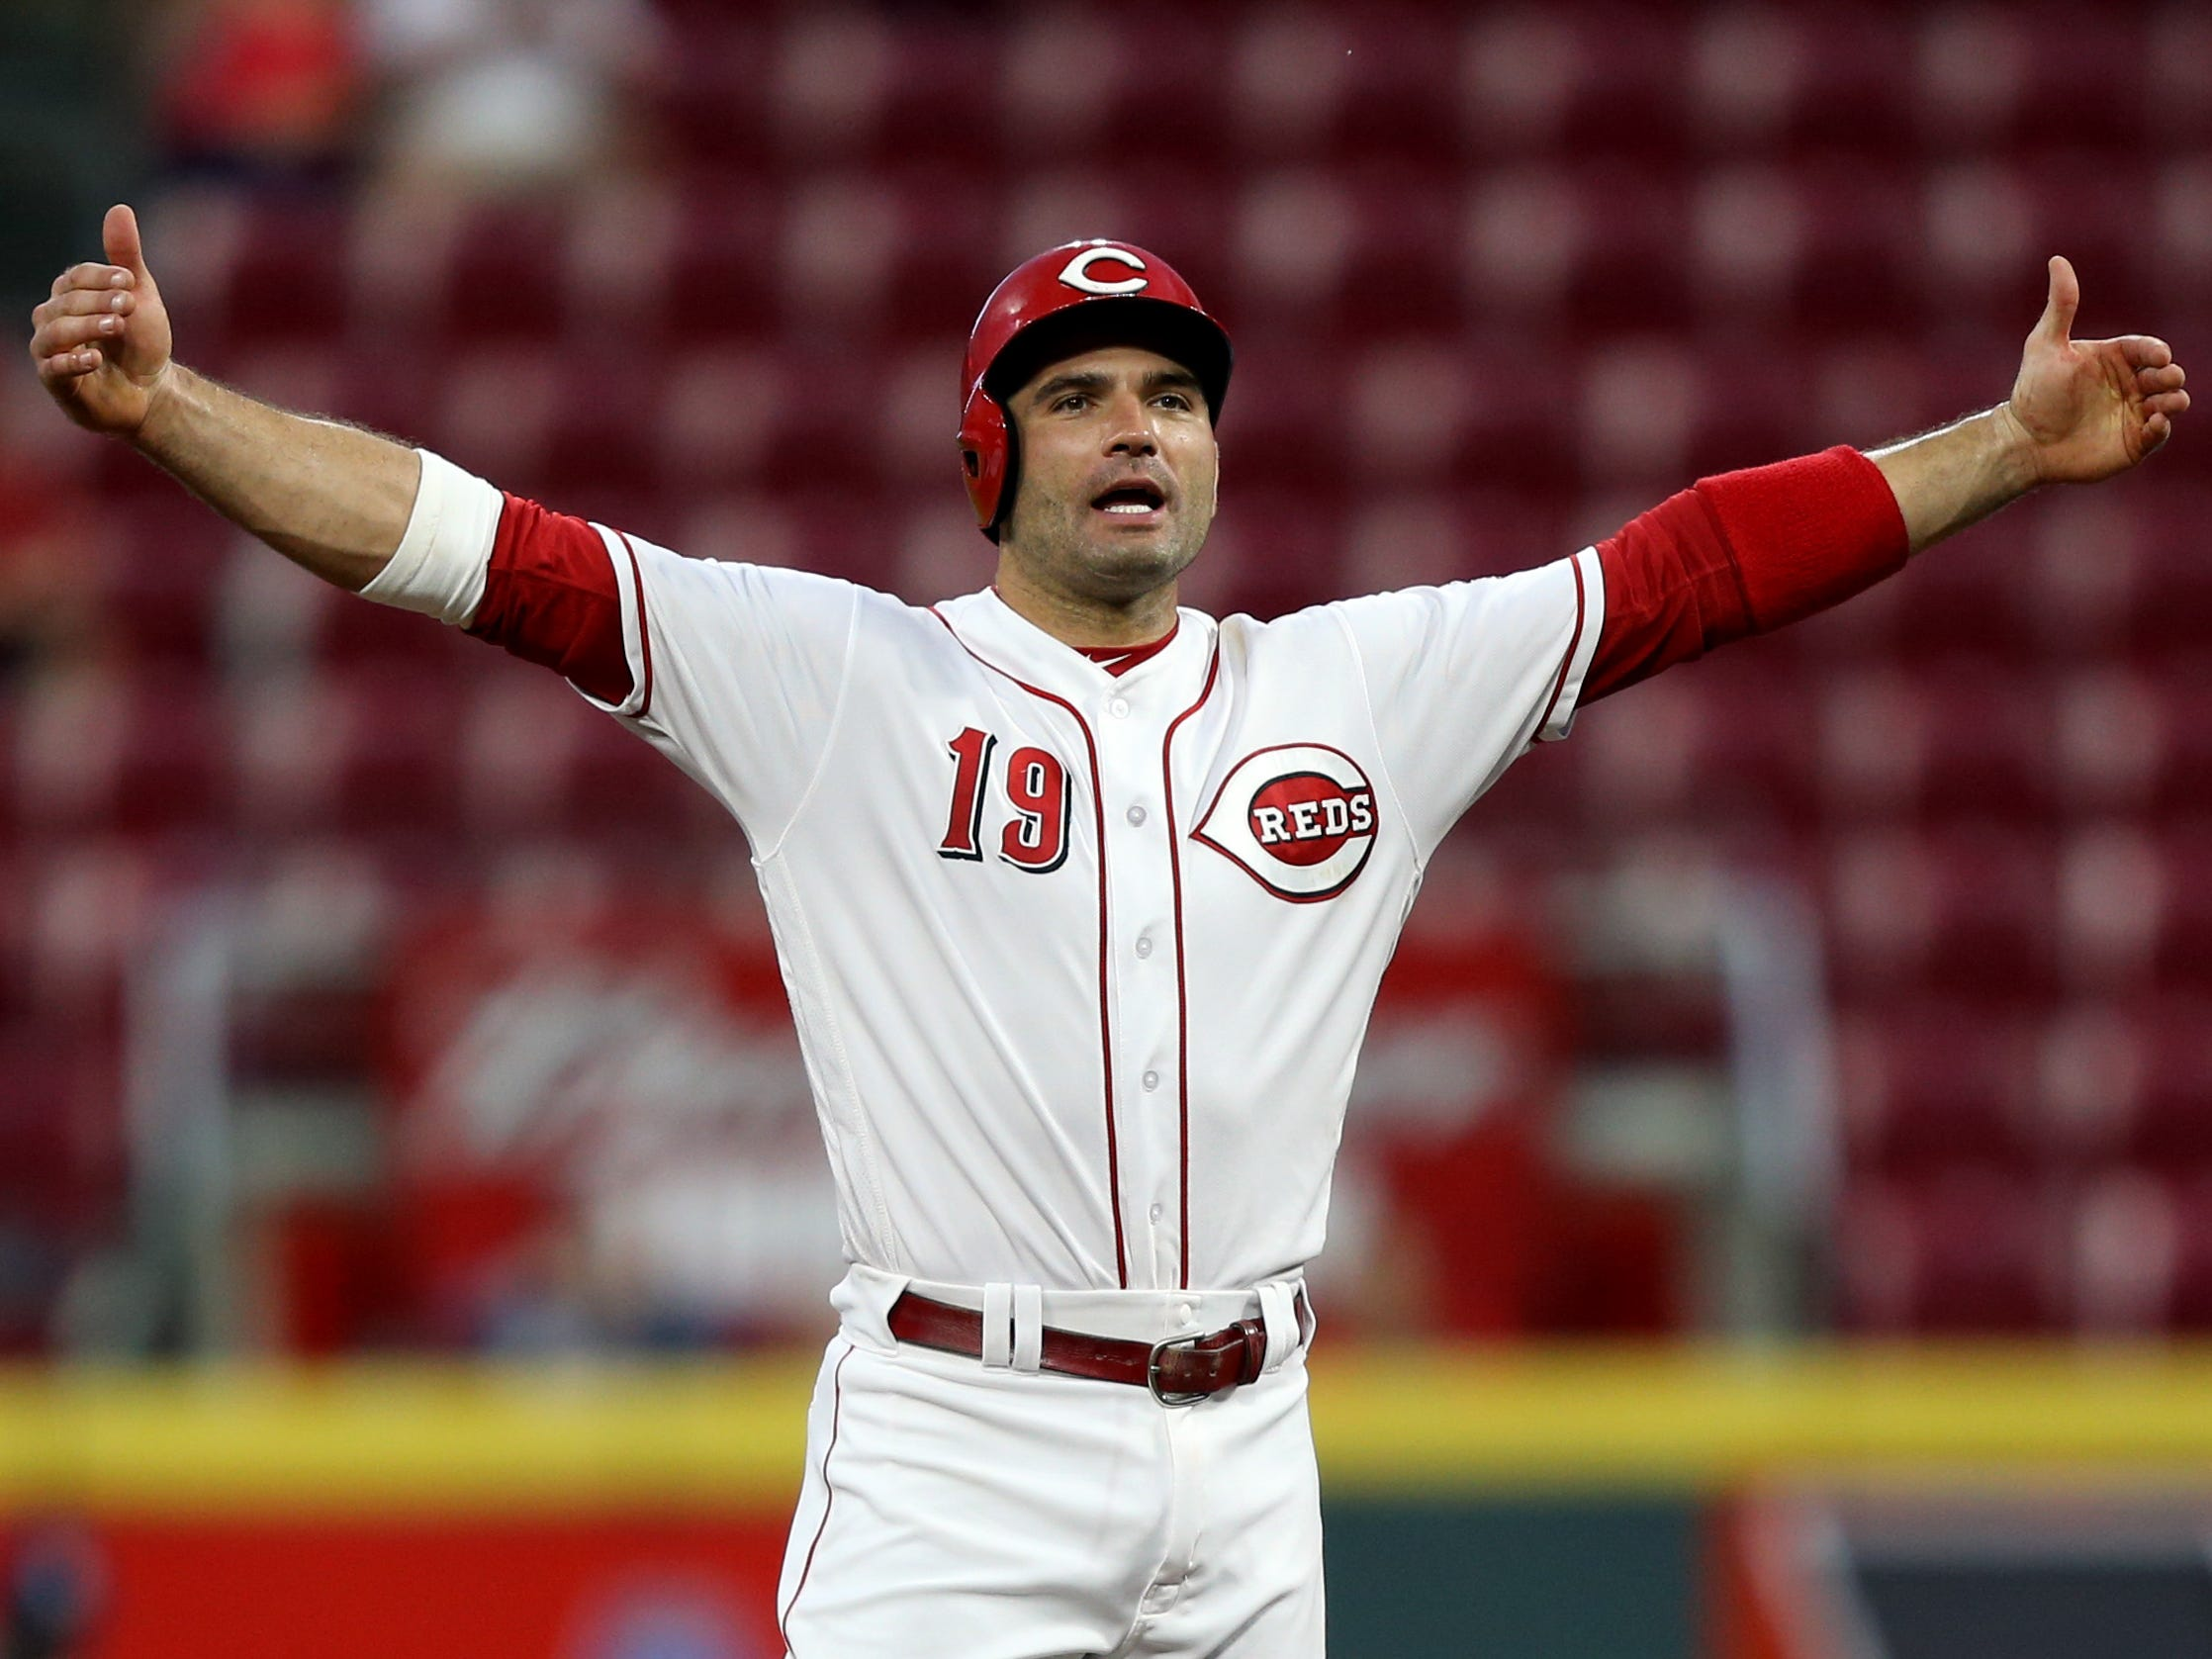 1B Joey Votto, Reds: $25,000,000